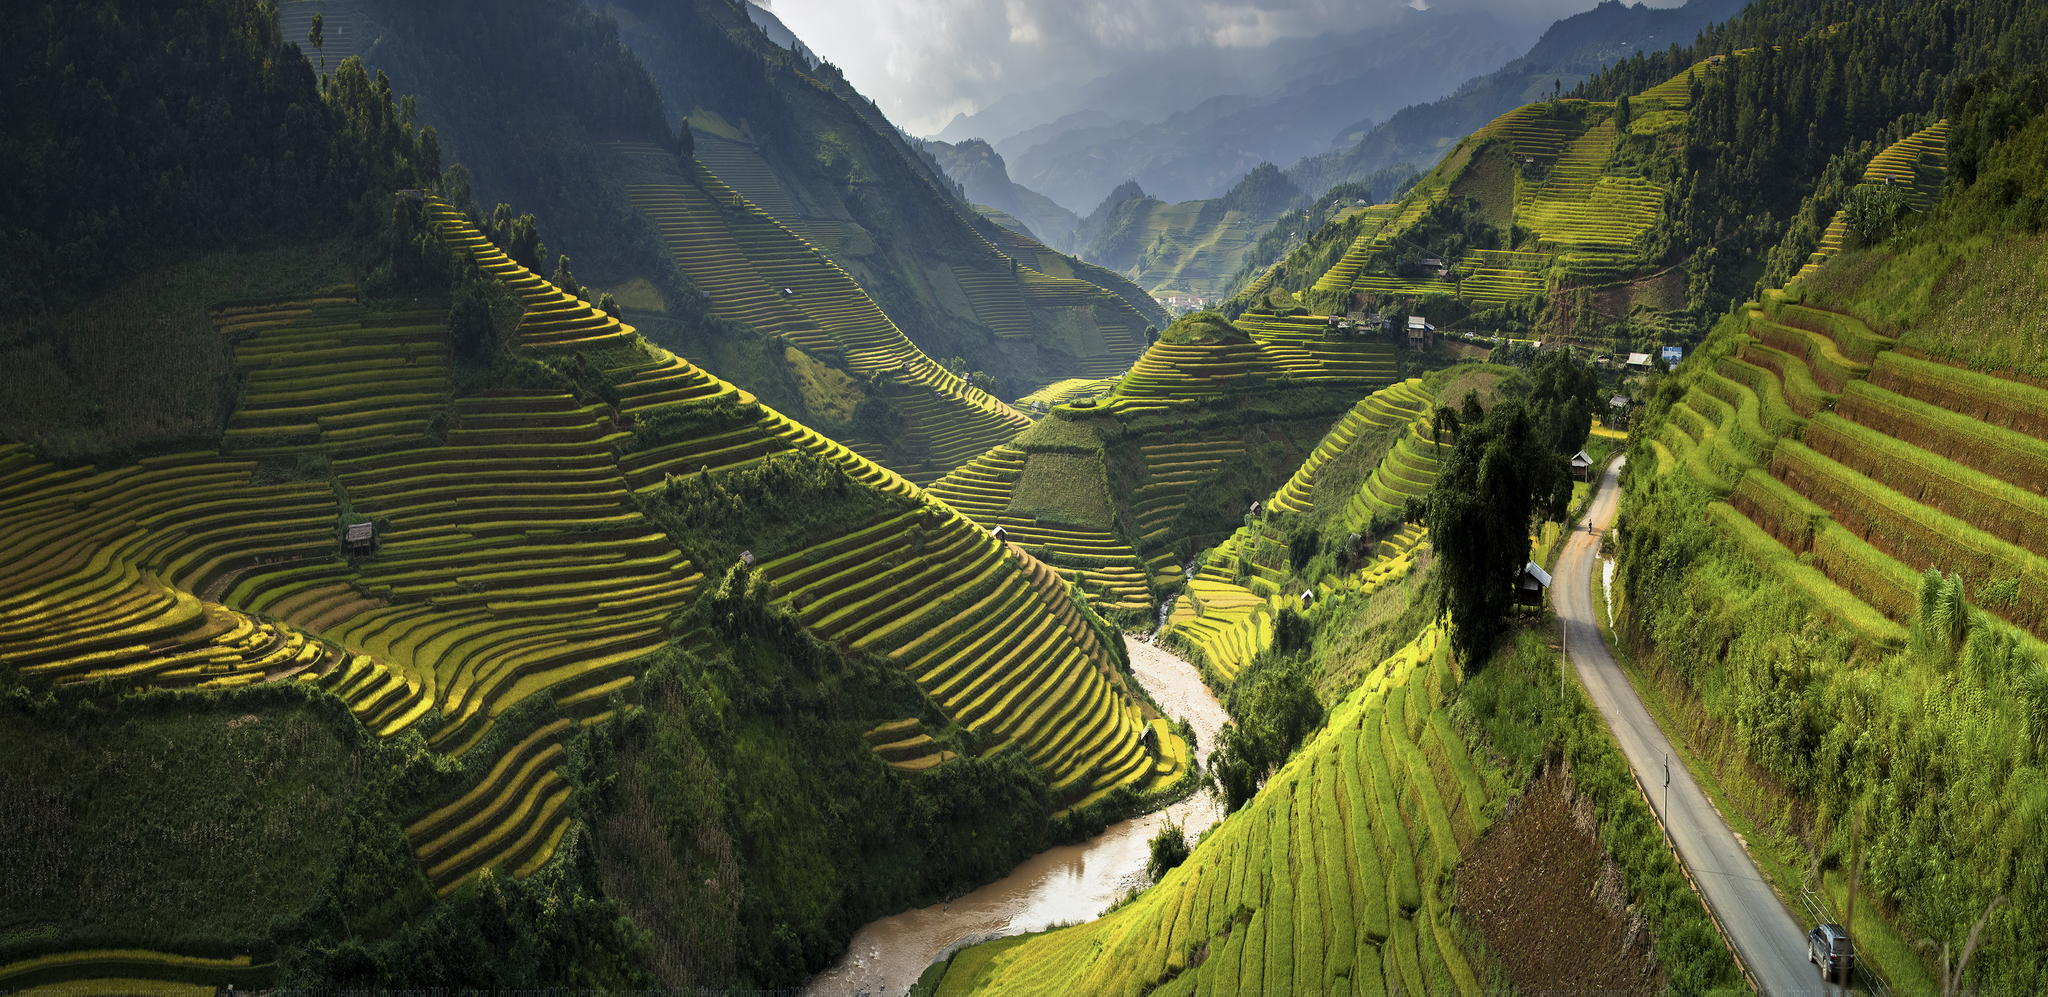 Mu Cang Chai Listed Among Insider's 19 Most Beautiful Mountains in the World